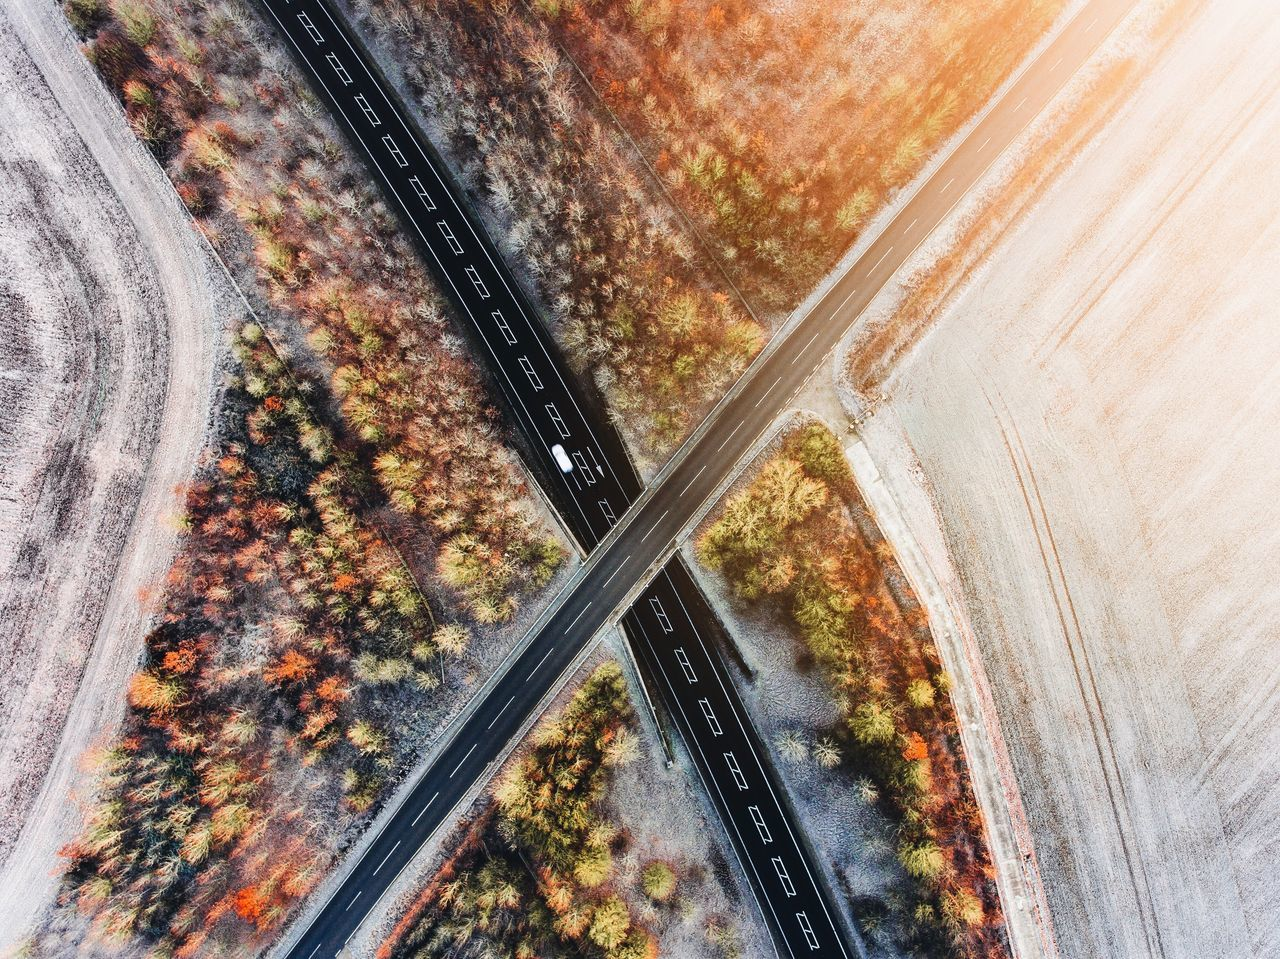 X Dronephotography Drone  Phantom 4 Dji Aerial Aerial Photography Landscape Urban Urban Geometry Epic Winter Frost Snow Sunrise Road First Eyeem Photo The City Light Flying High